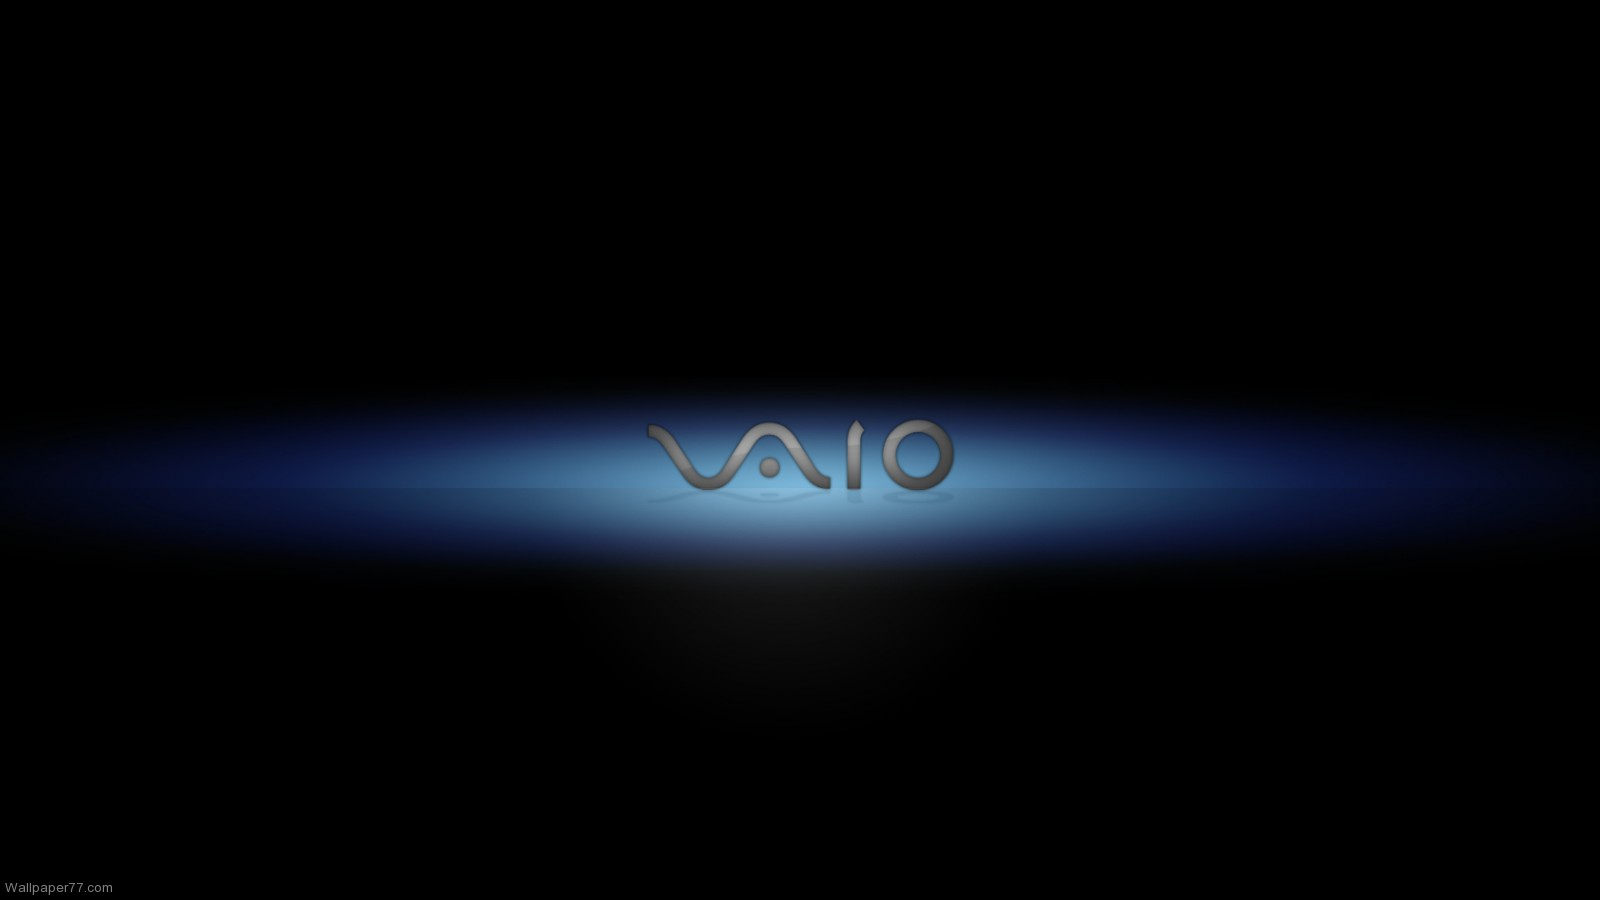 Vaio Dark 1600x900 pixels Wallpapers tagged Computer Wallpapers 1600x900